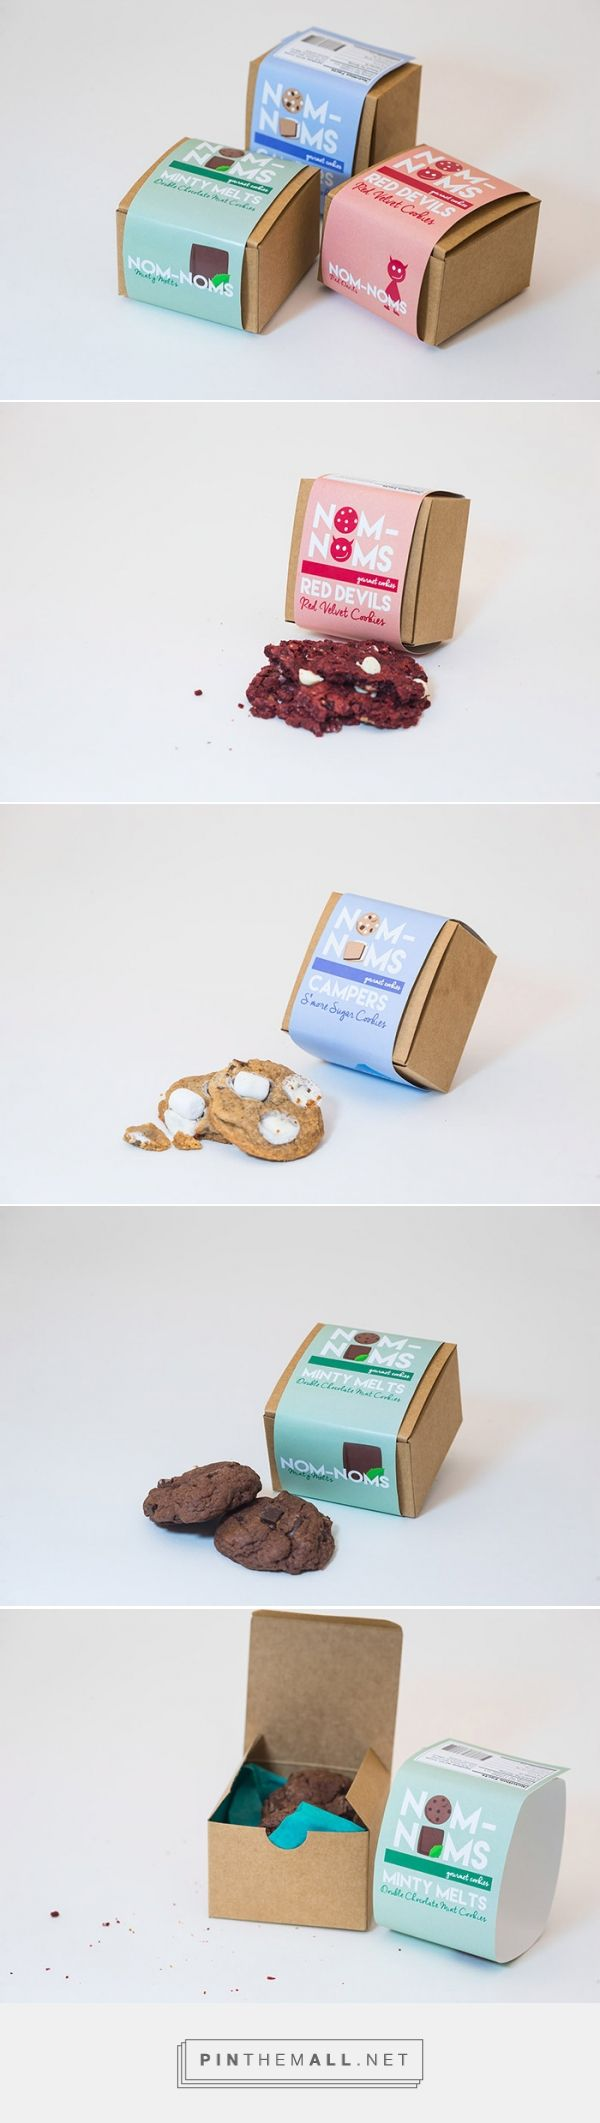 NOM-NOMS Cookies by Elsie How. Pin curated by #SFields99 #packaging #design